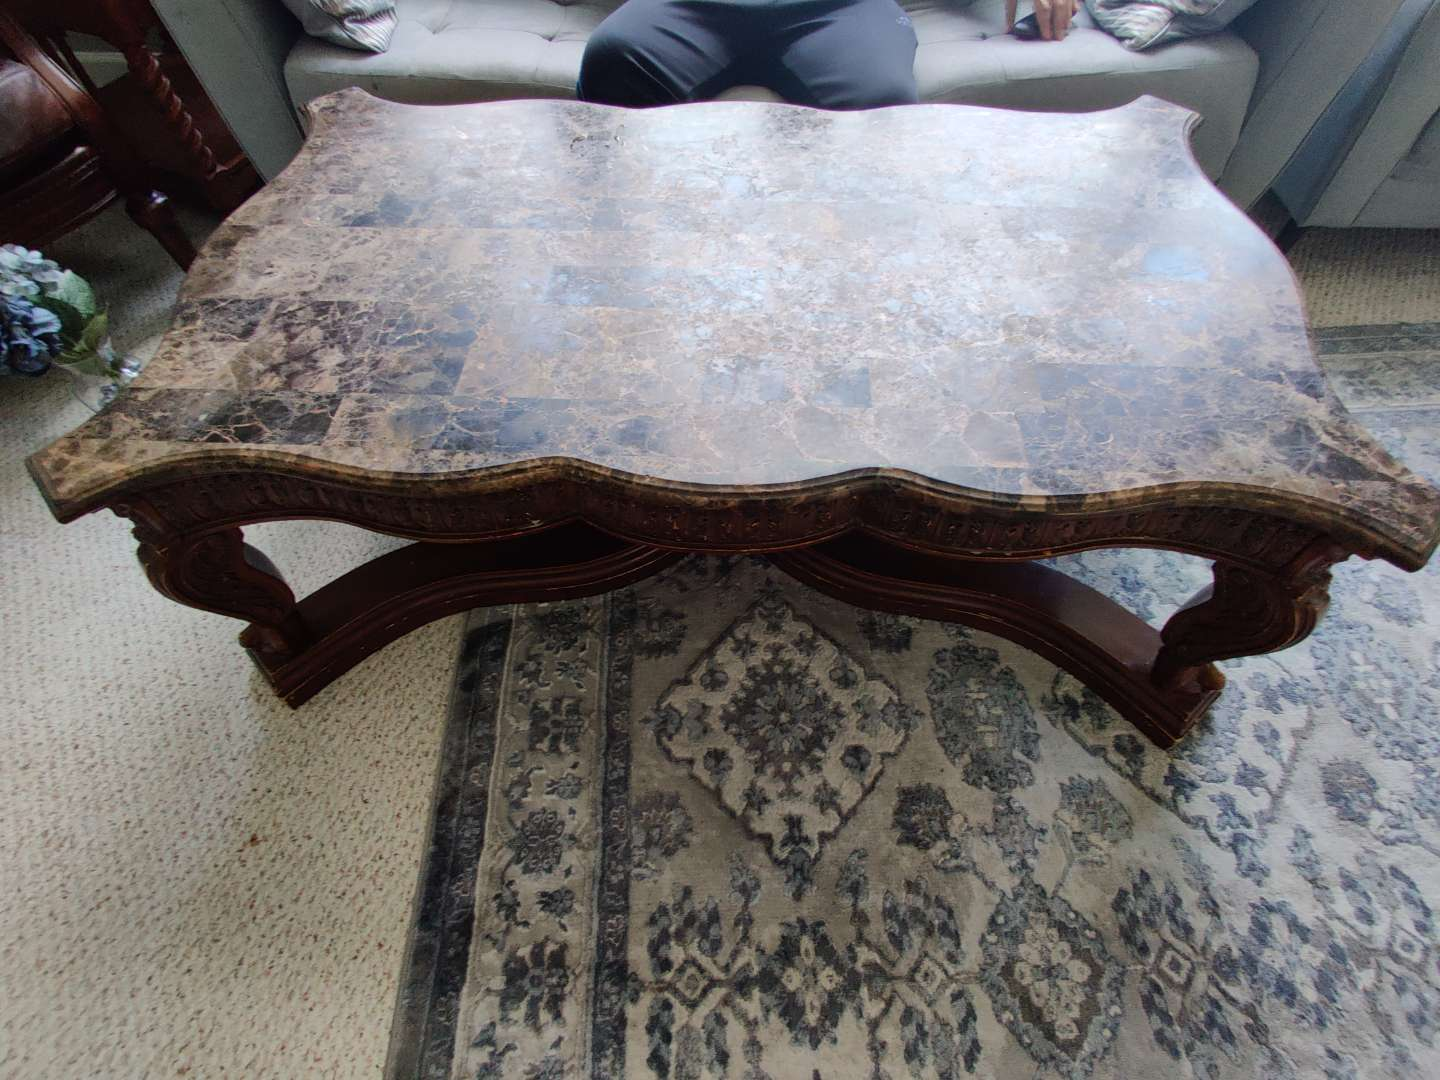 312 marble top coffee table 55 inches long by 35 in wide very nice